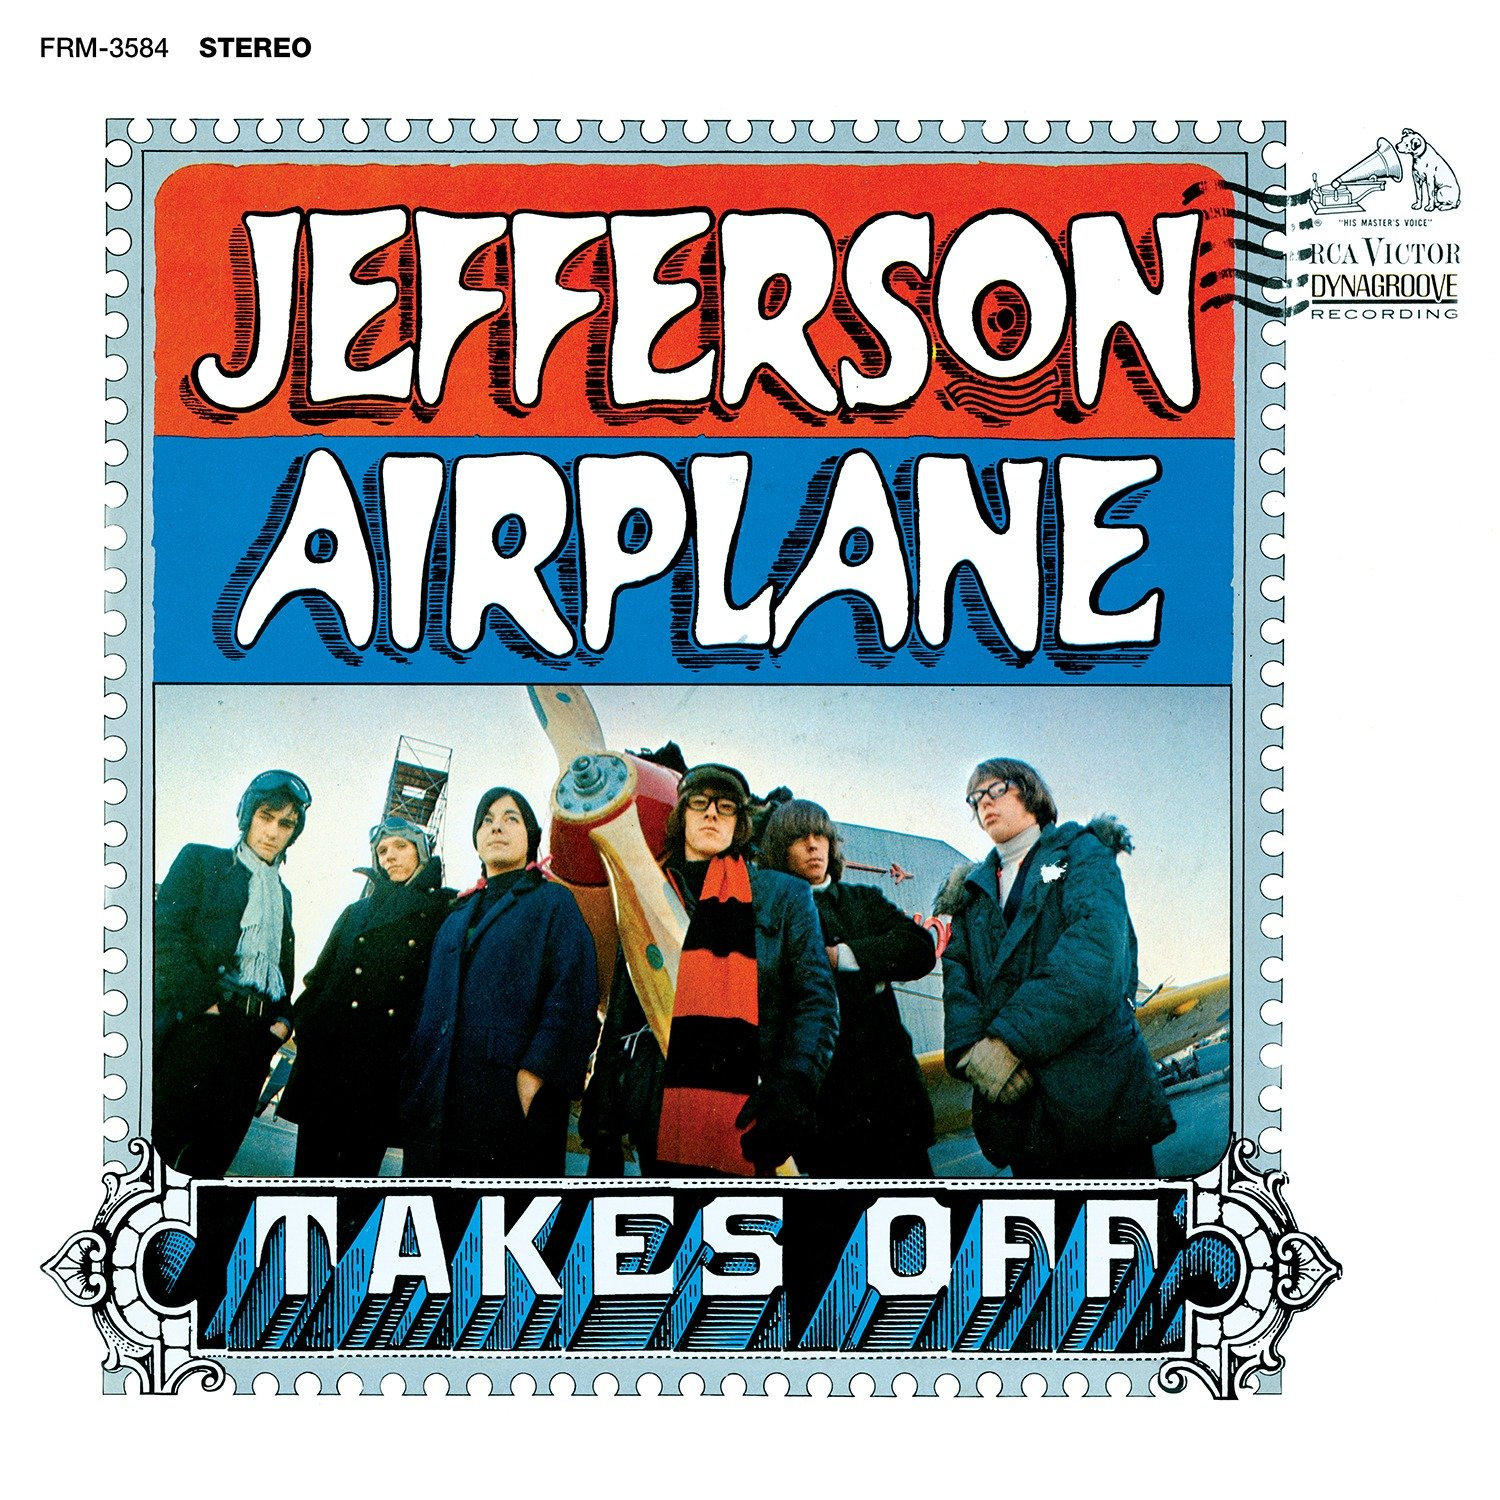 Vinilo : Jefferson Airplane - Takes Off (180 Gram Vinyl, Limited Edition, Gatefold LP Jacket)